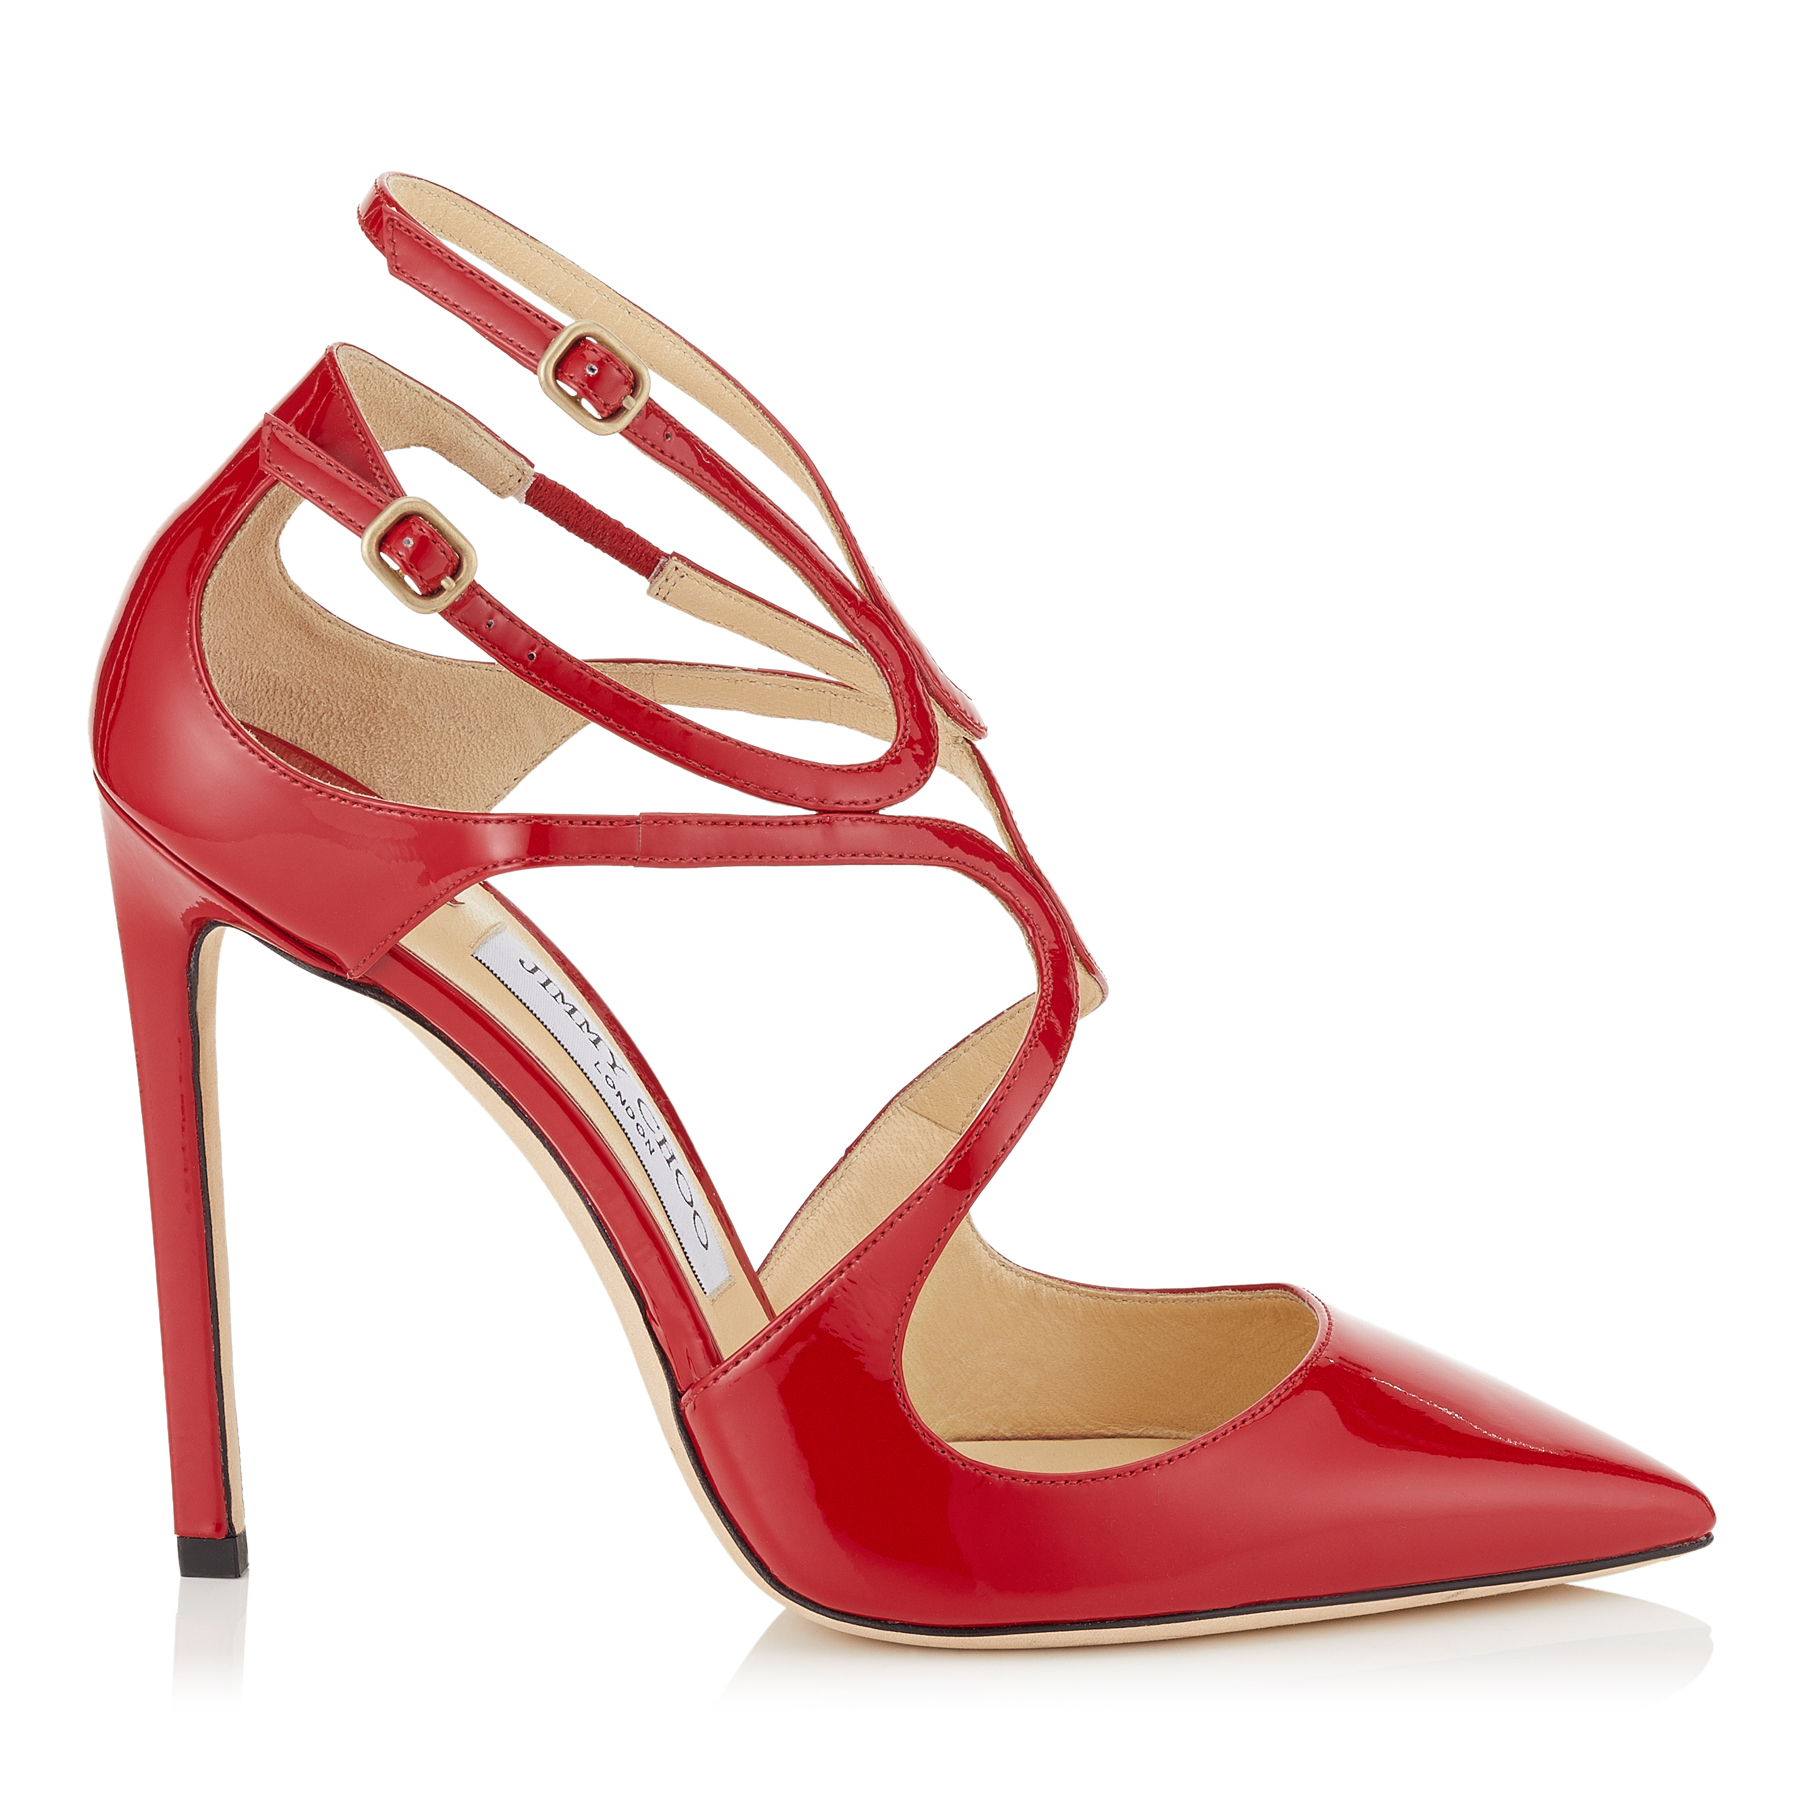 LANCER 110 Red Patent Leather Pointy Toe Pumps by Jimmy Choo